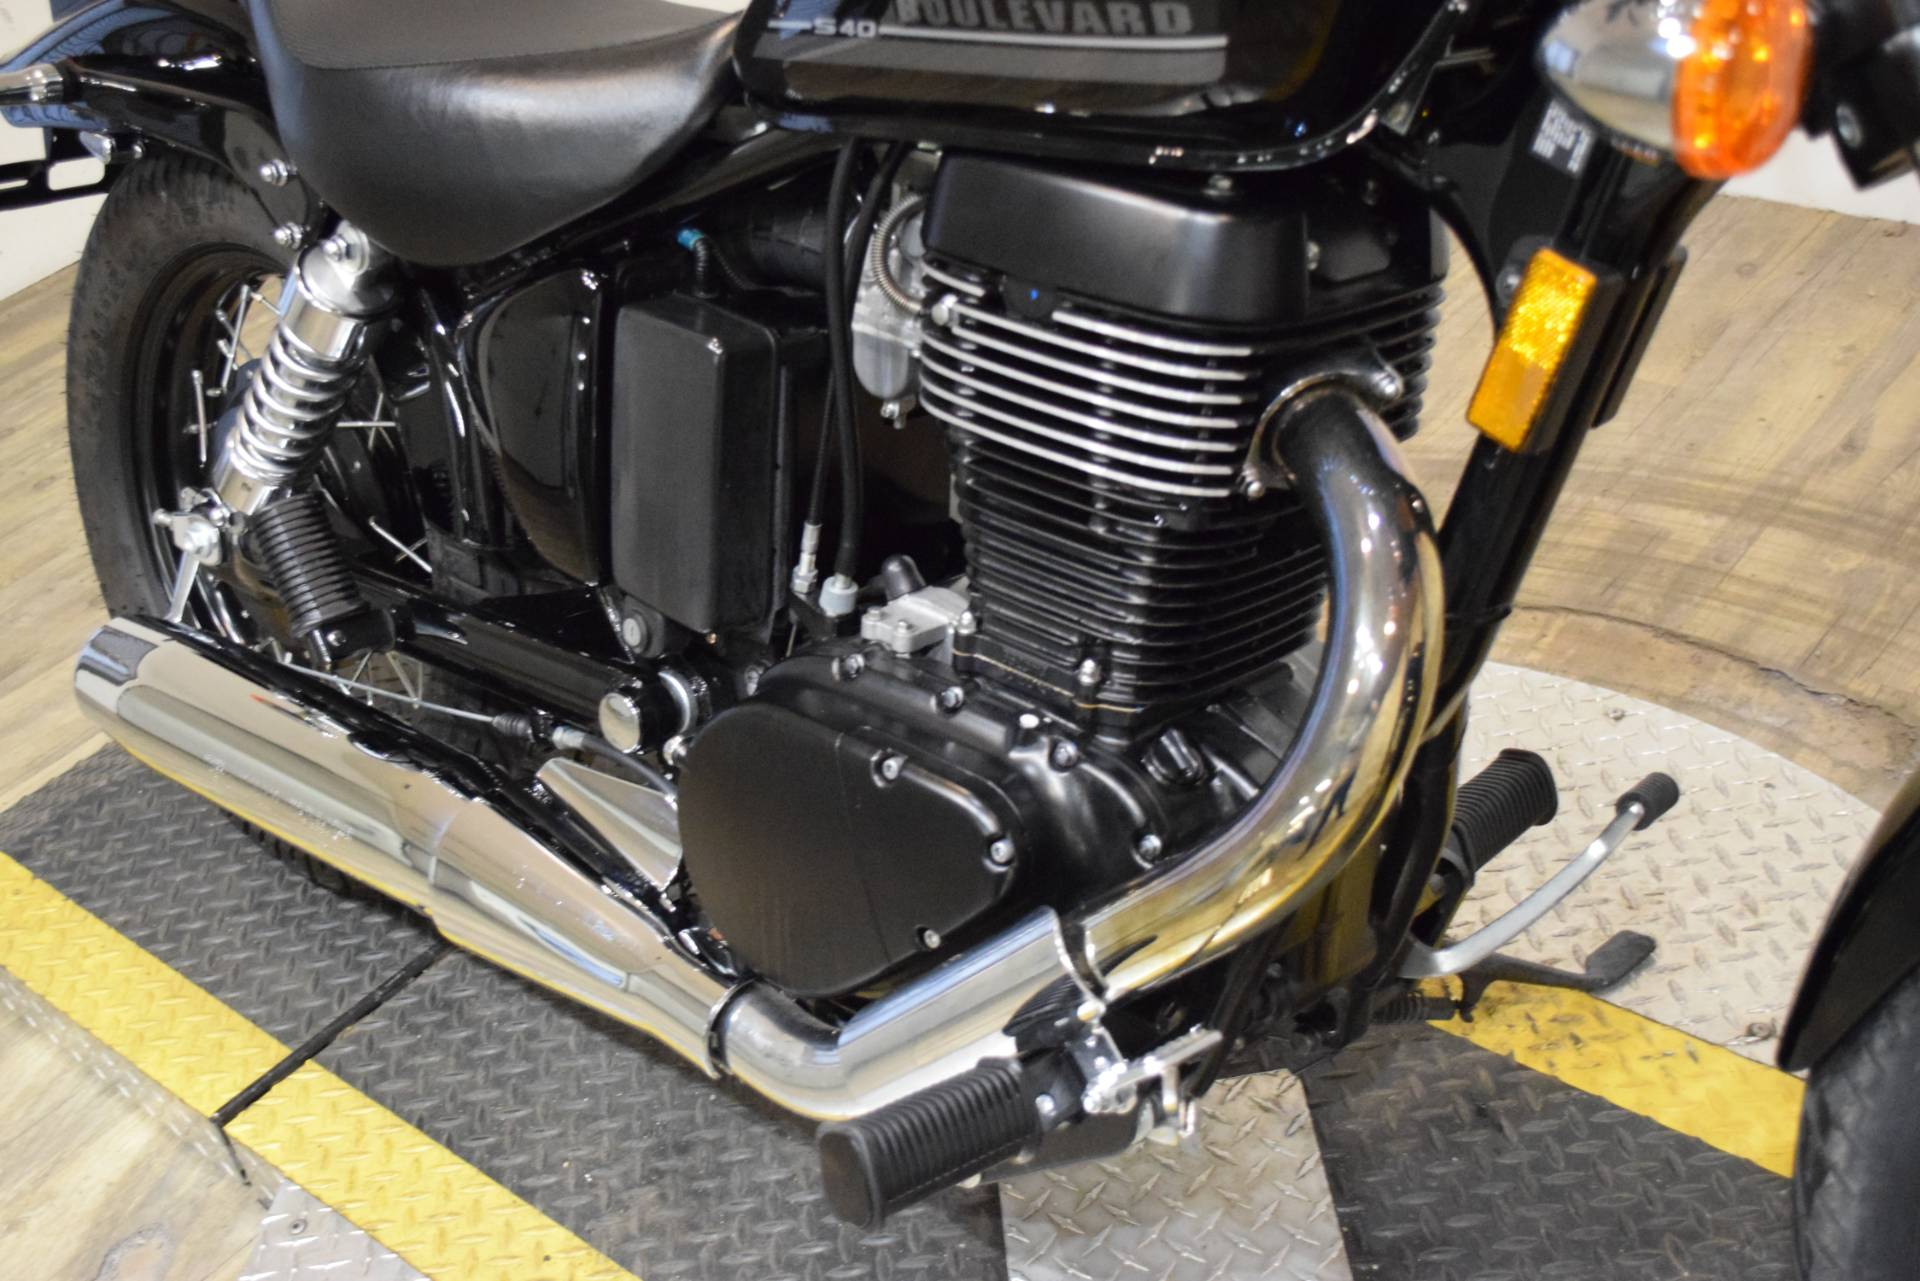 2017 Suzuki Boulevard S40 in Wauconda, Illinois - Photo 4